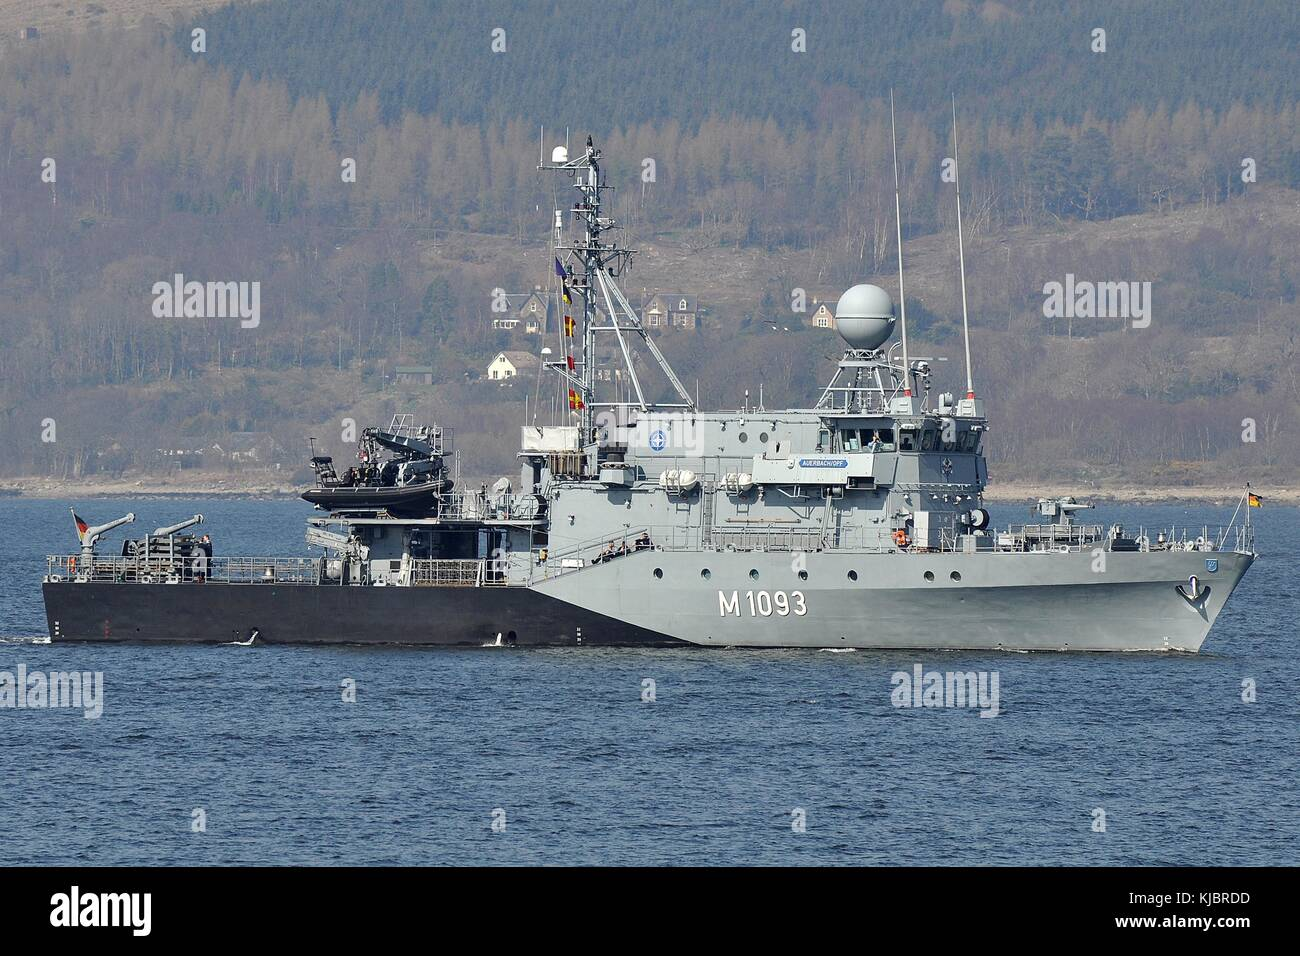 M1093 FGS AUERBACH-OPF, ENSDORF CLASS MINEHUNTER OF THE GERMAN NAVY. - Stock Image